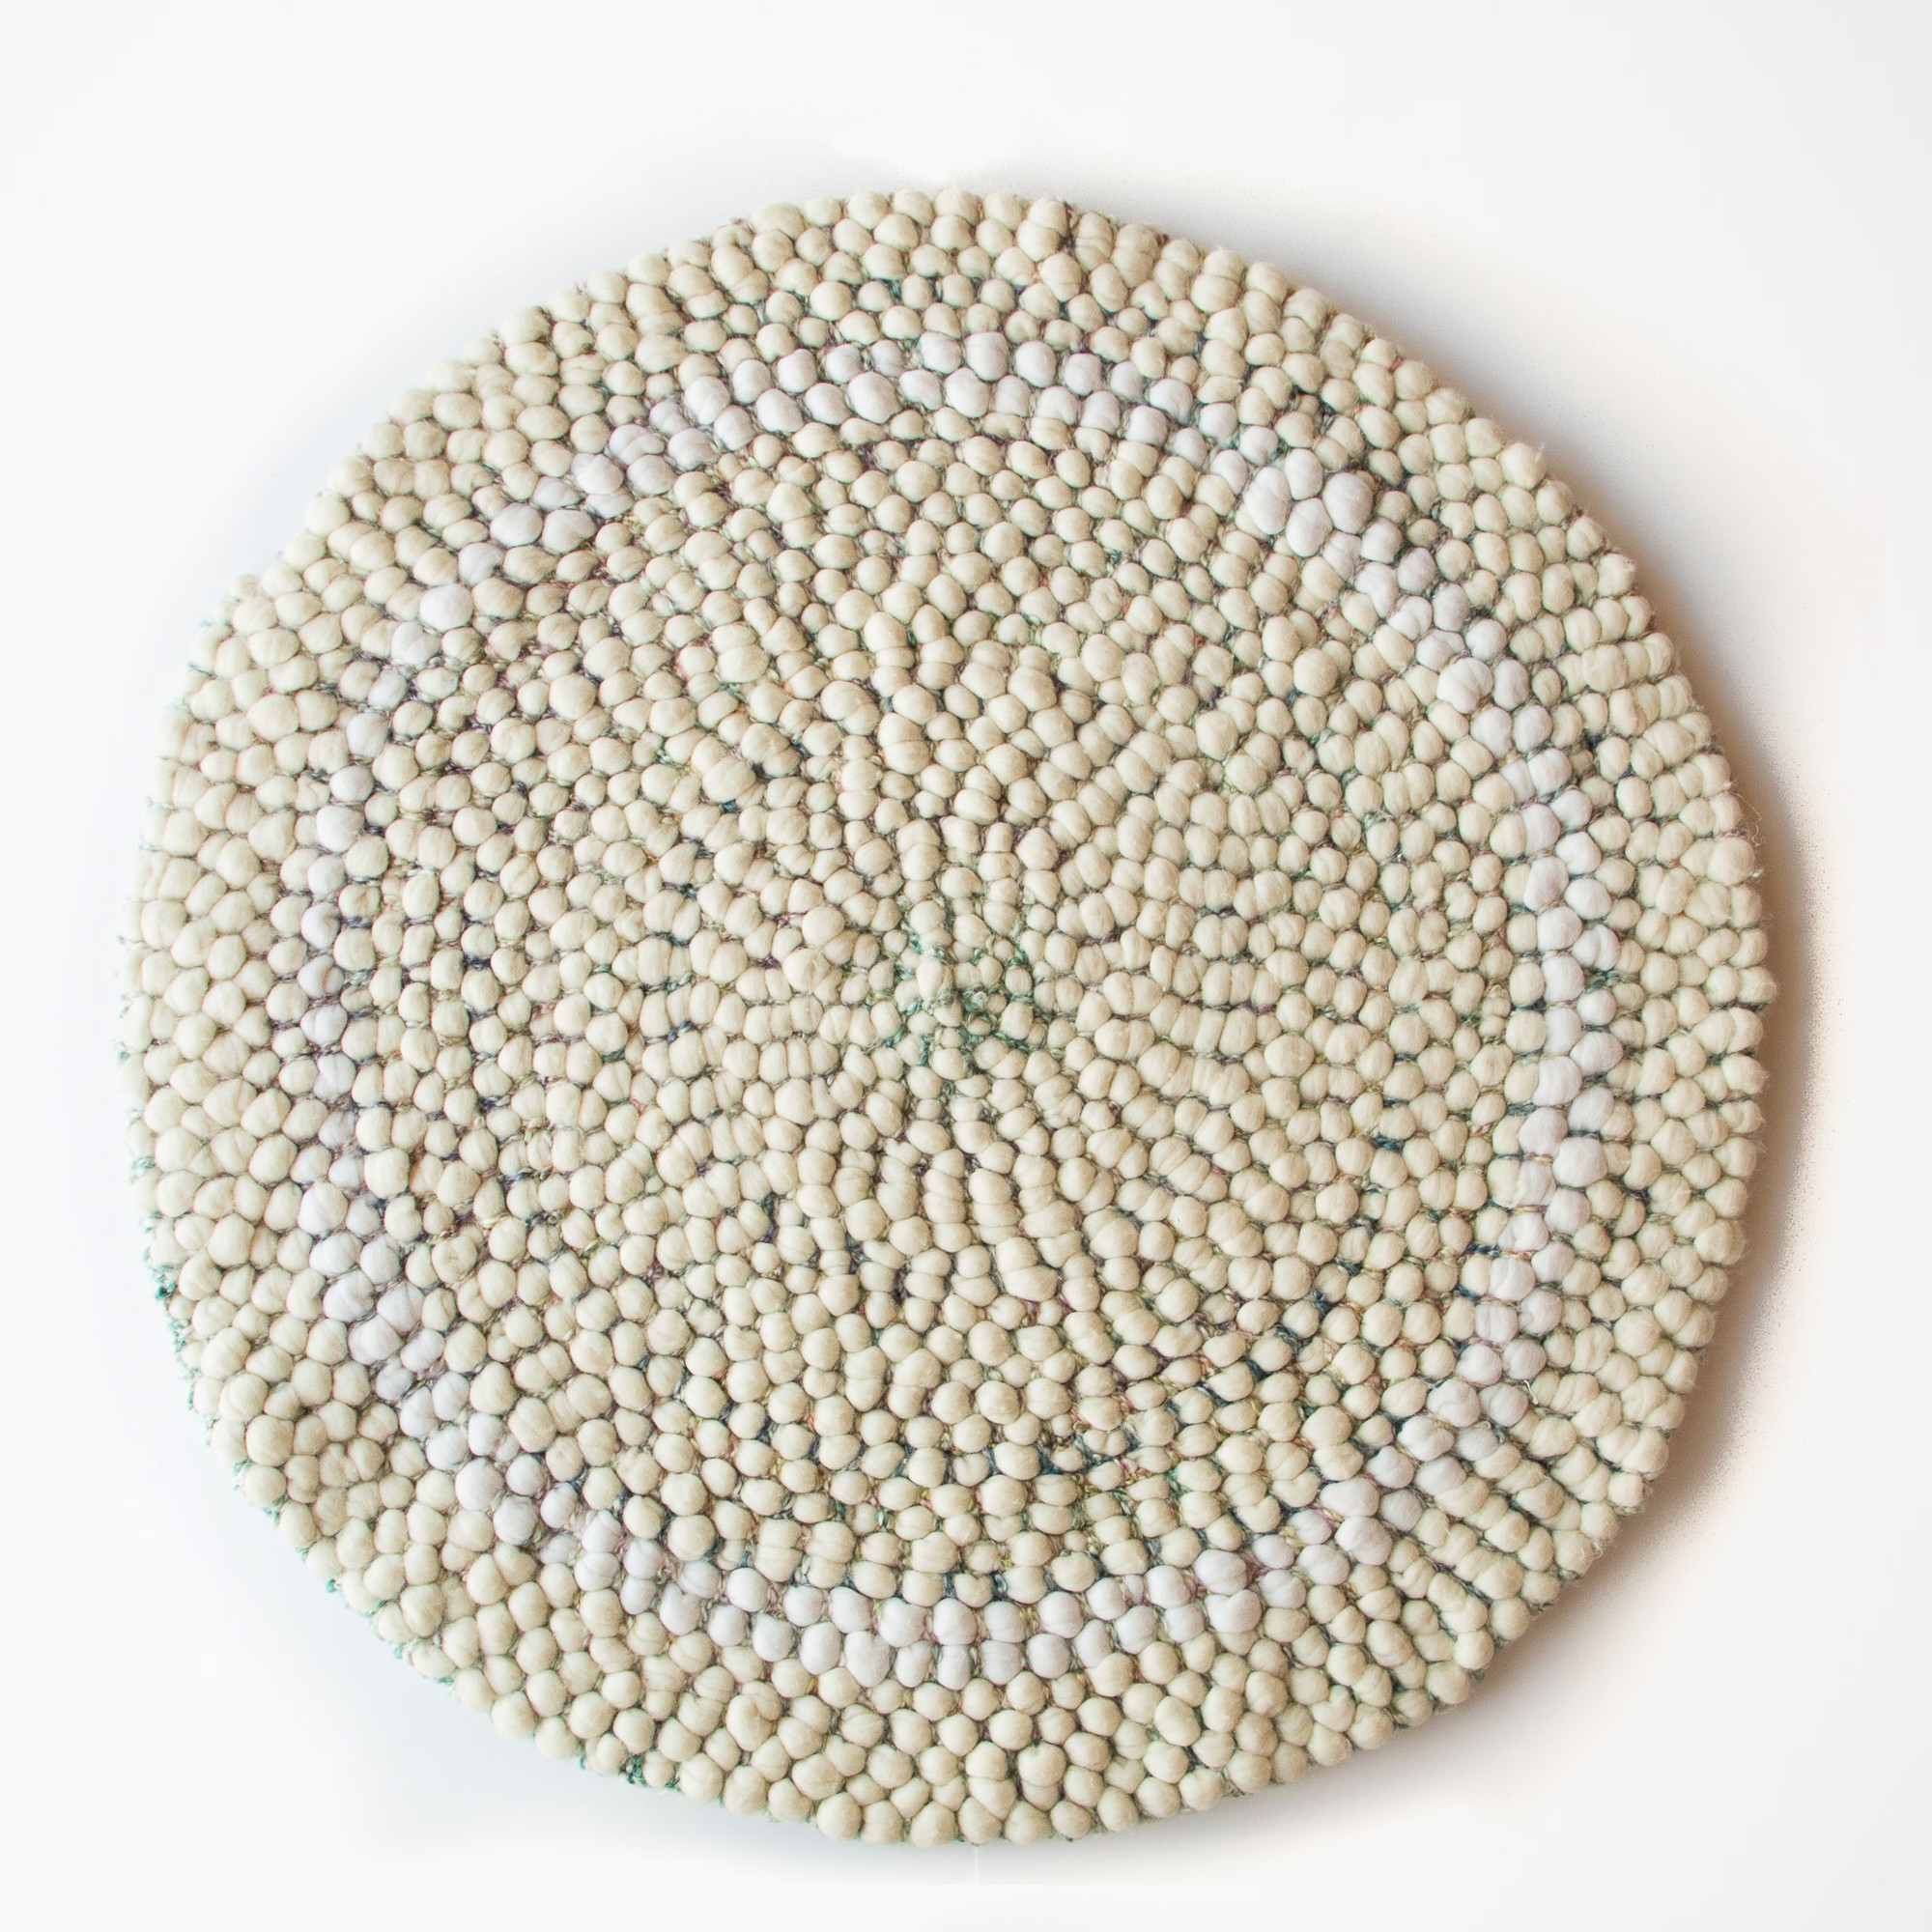 Circular Wool Rugs Roselawnlutheran With Regard To Small Circular Rugs (Image 3 of 15)